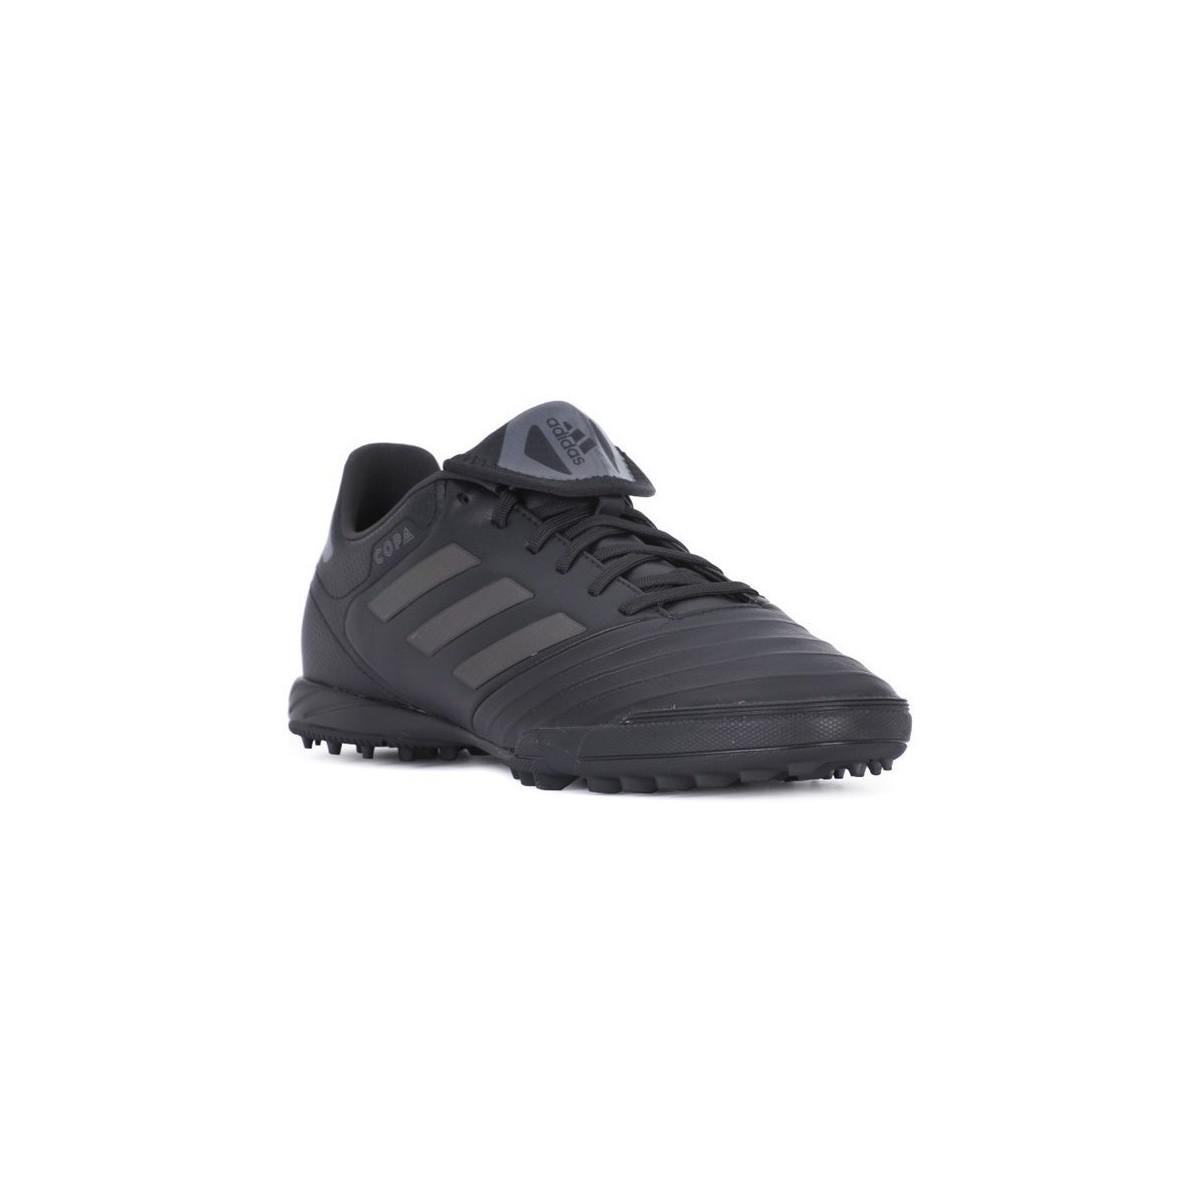 huge selection of 1f585 f2d87 Adidas - Copa Tango 183 Tf Mens Football Boots In Black for Men - Lyst.  View fullscreen